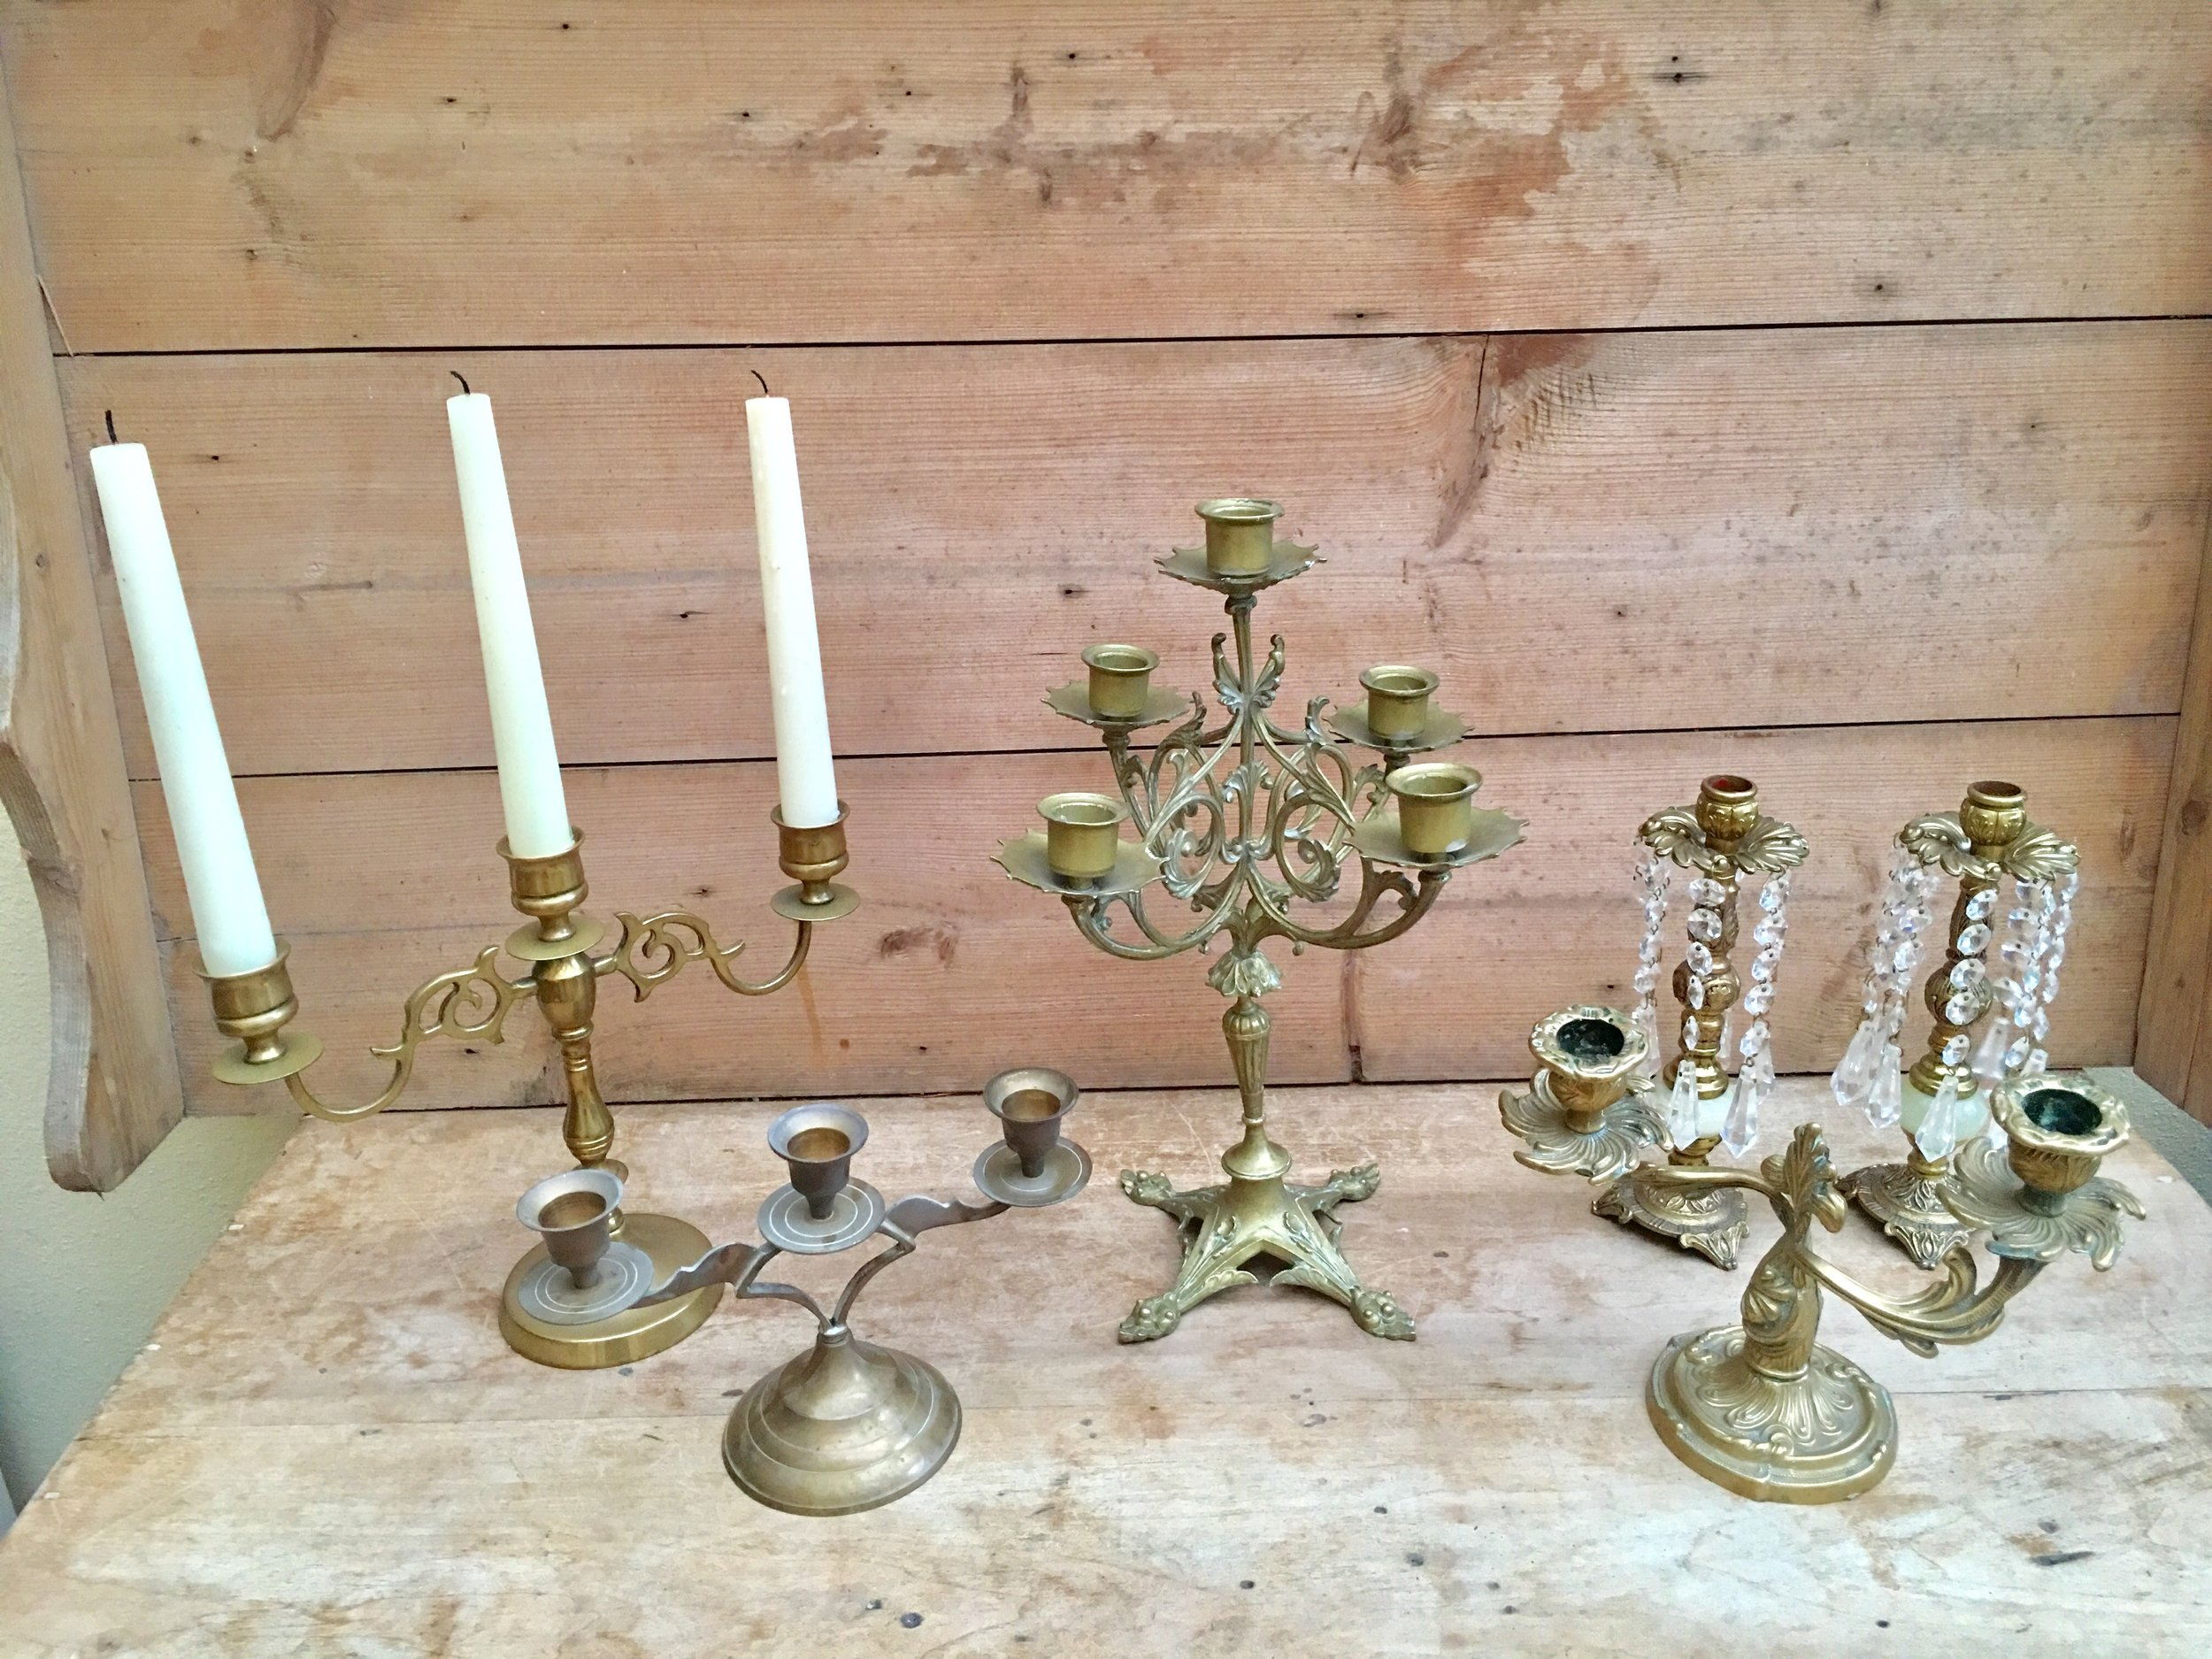 French Candelabra from £8